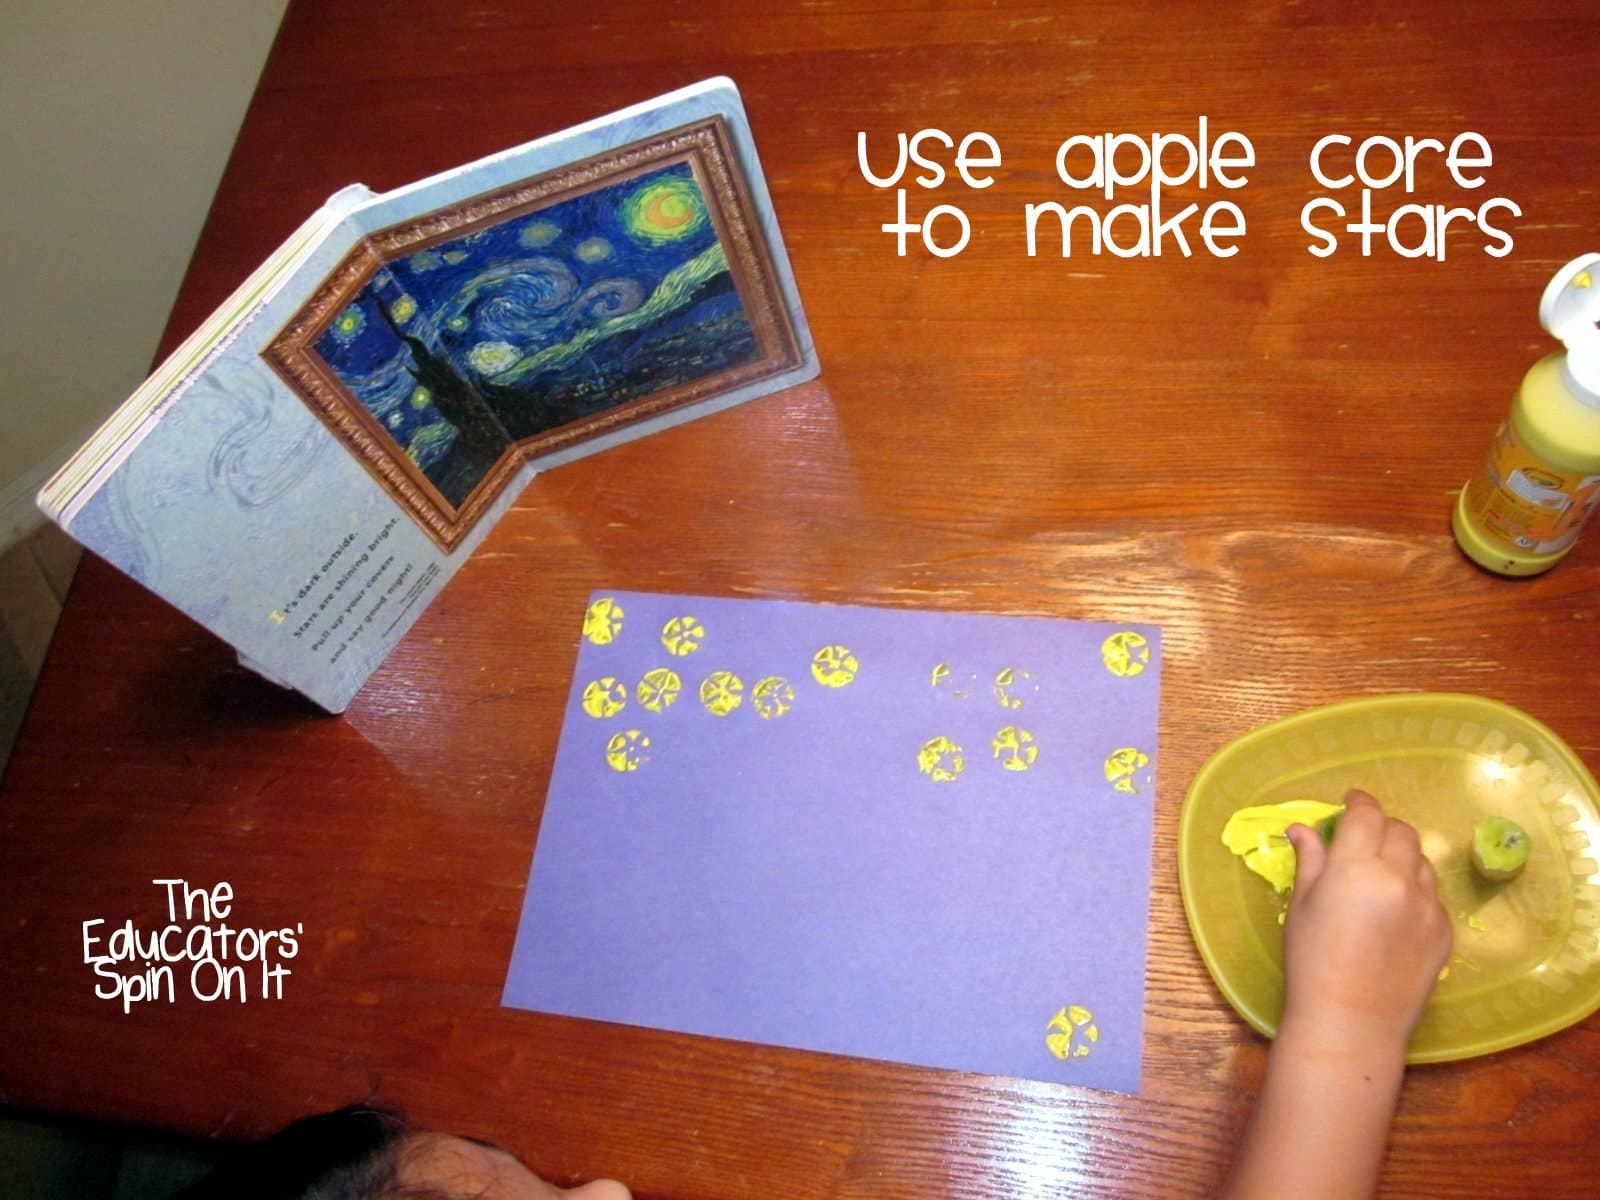 Using apple cores to make stars